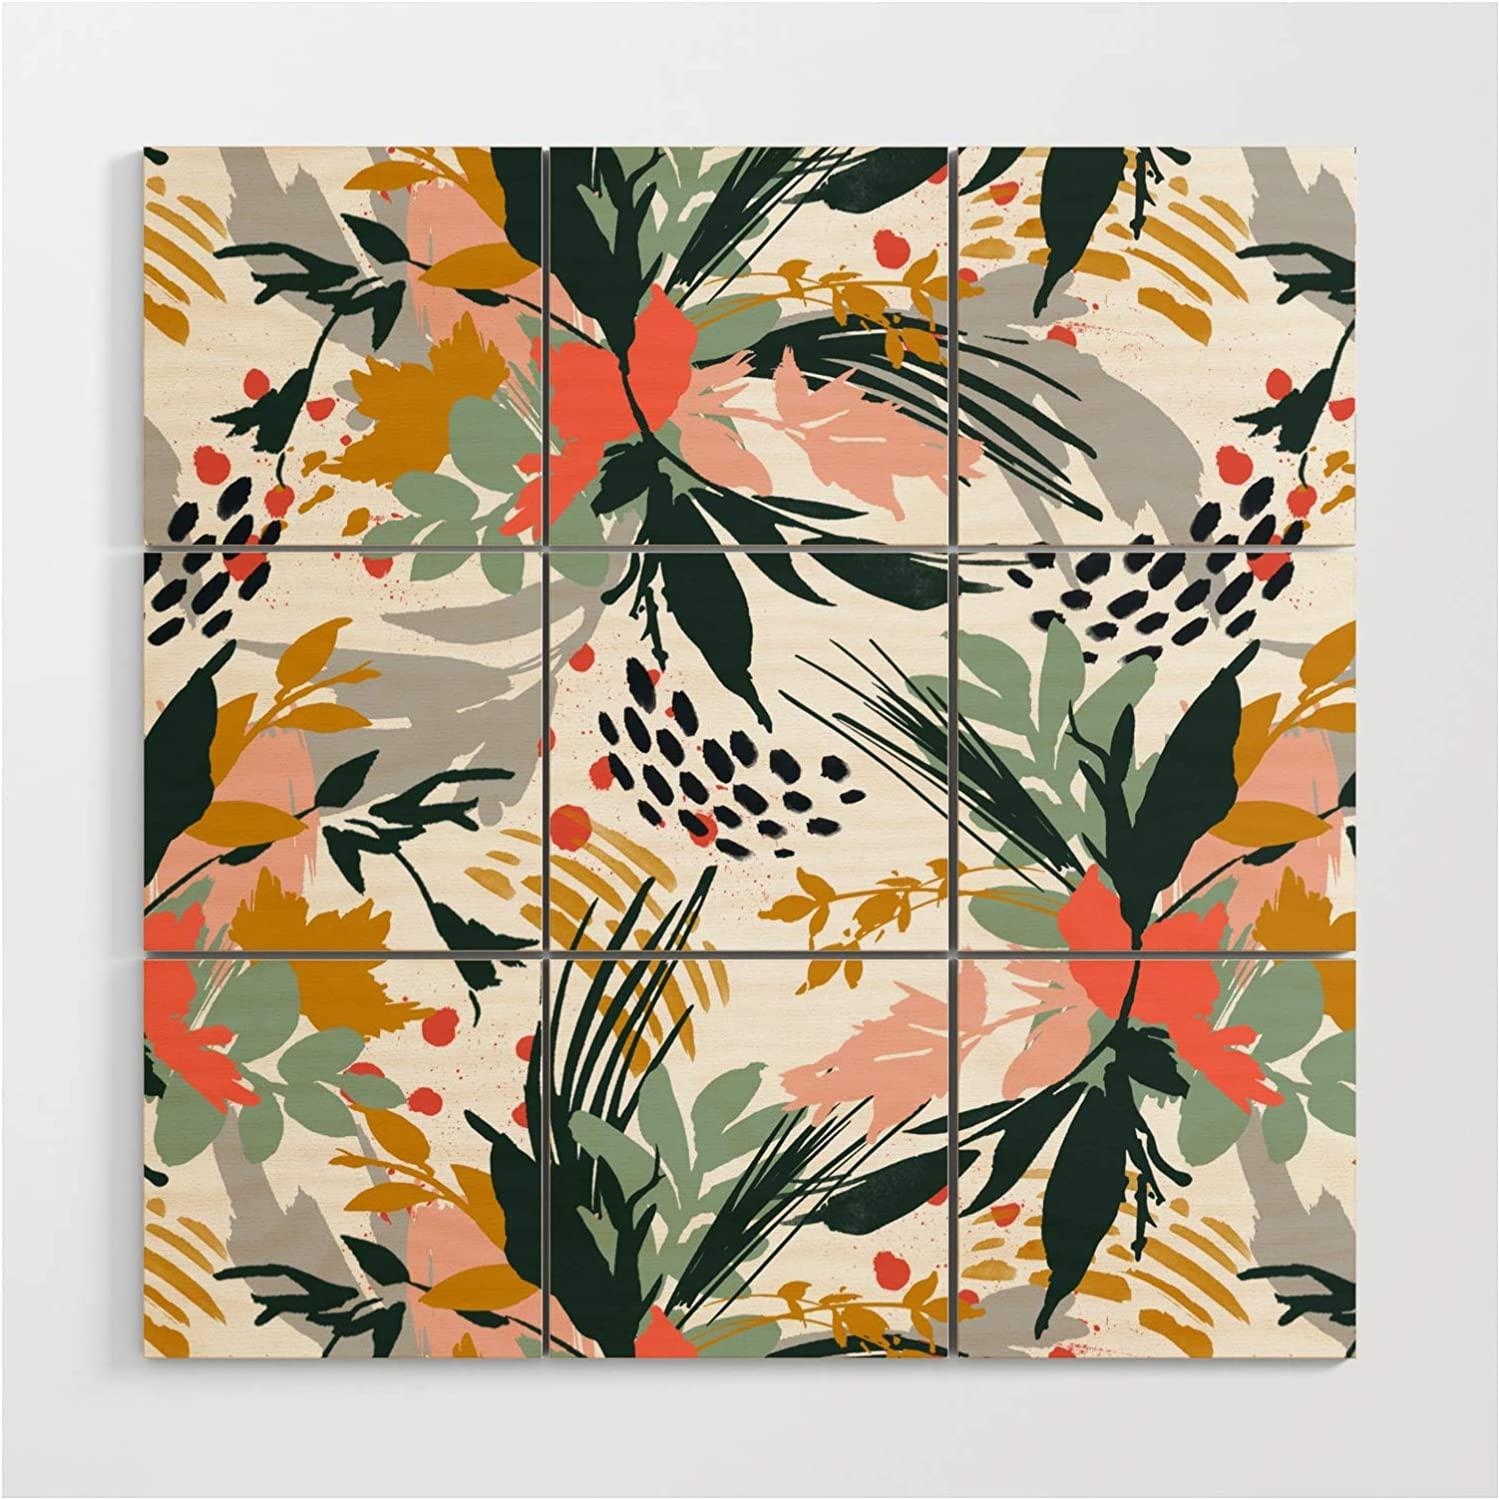 Society6 Botanical Brush Strokes I by Wall Max 55% OFF Ar Wooden Mmartabc Max 47% OFF on